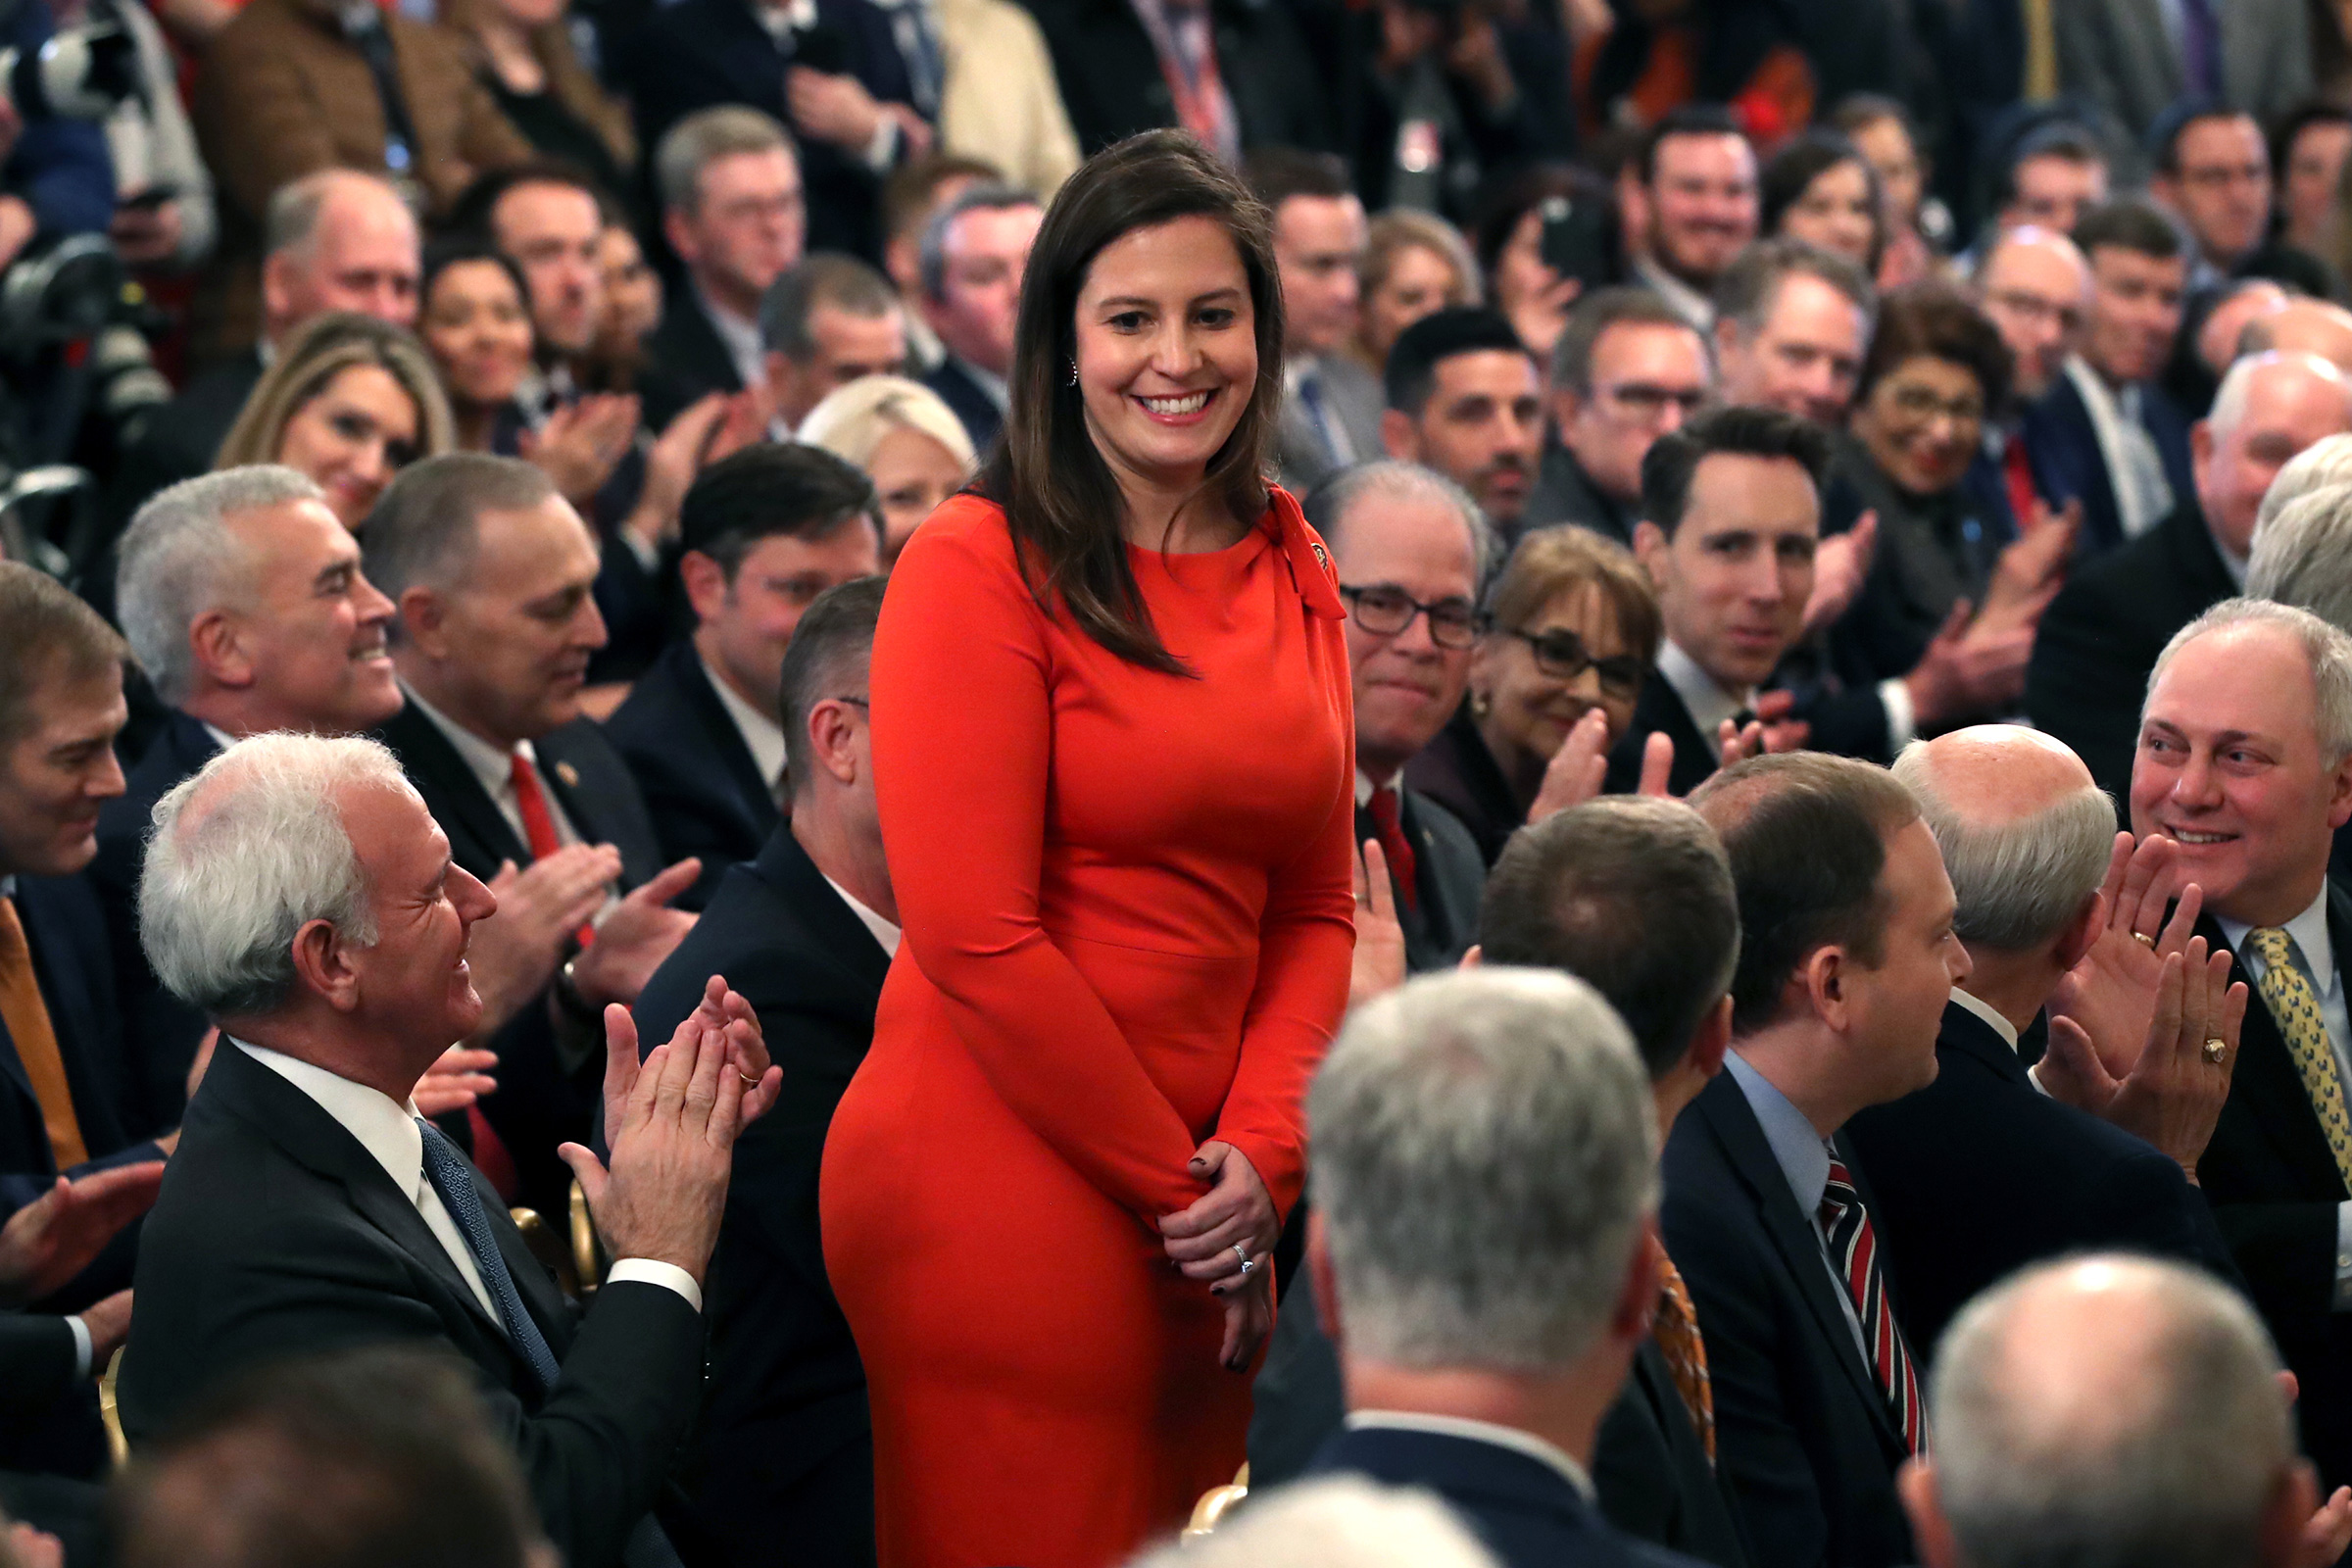 Republican Rep. Elise Stefanik stands as she's acknowledged by U.S. President Donald Trump as he speaks one day after the U.S. Senate acquitted on two articles of impeachment, in the East Room of the White House February 6, 2020 in Washington, DC.